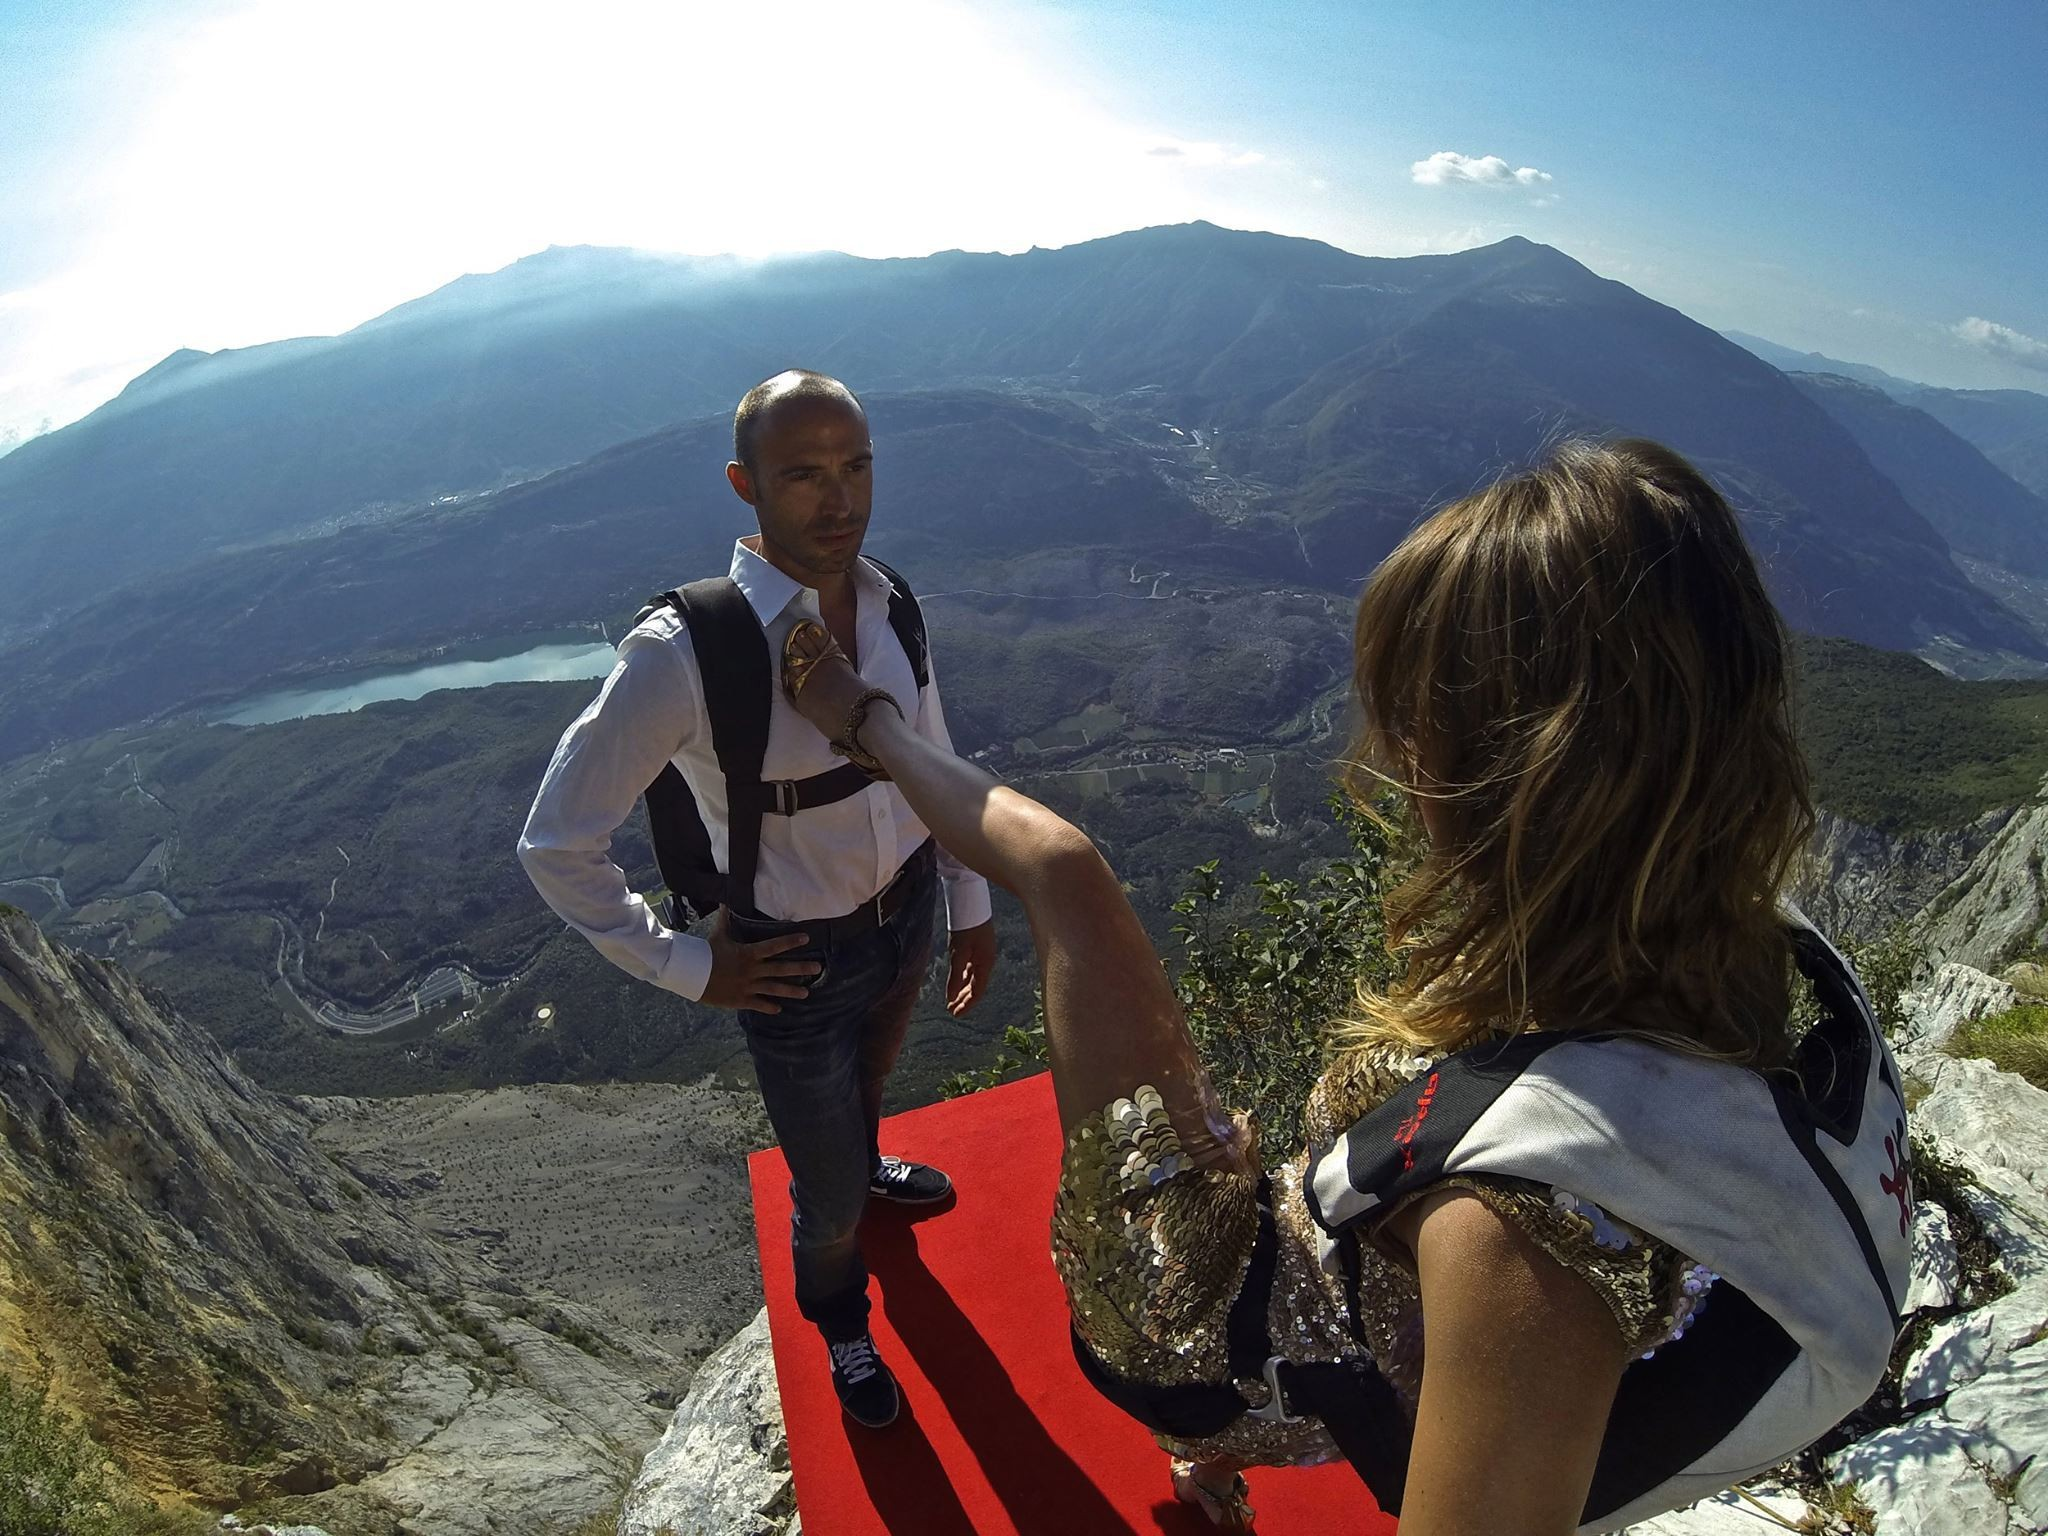 BASE Jumping in Style: Roberta Mancino & Roberto Cavalli Team Up